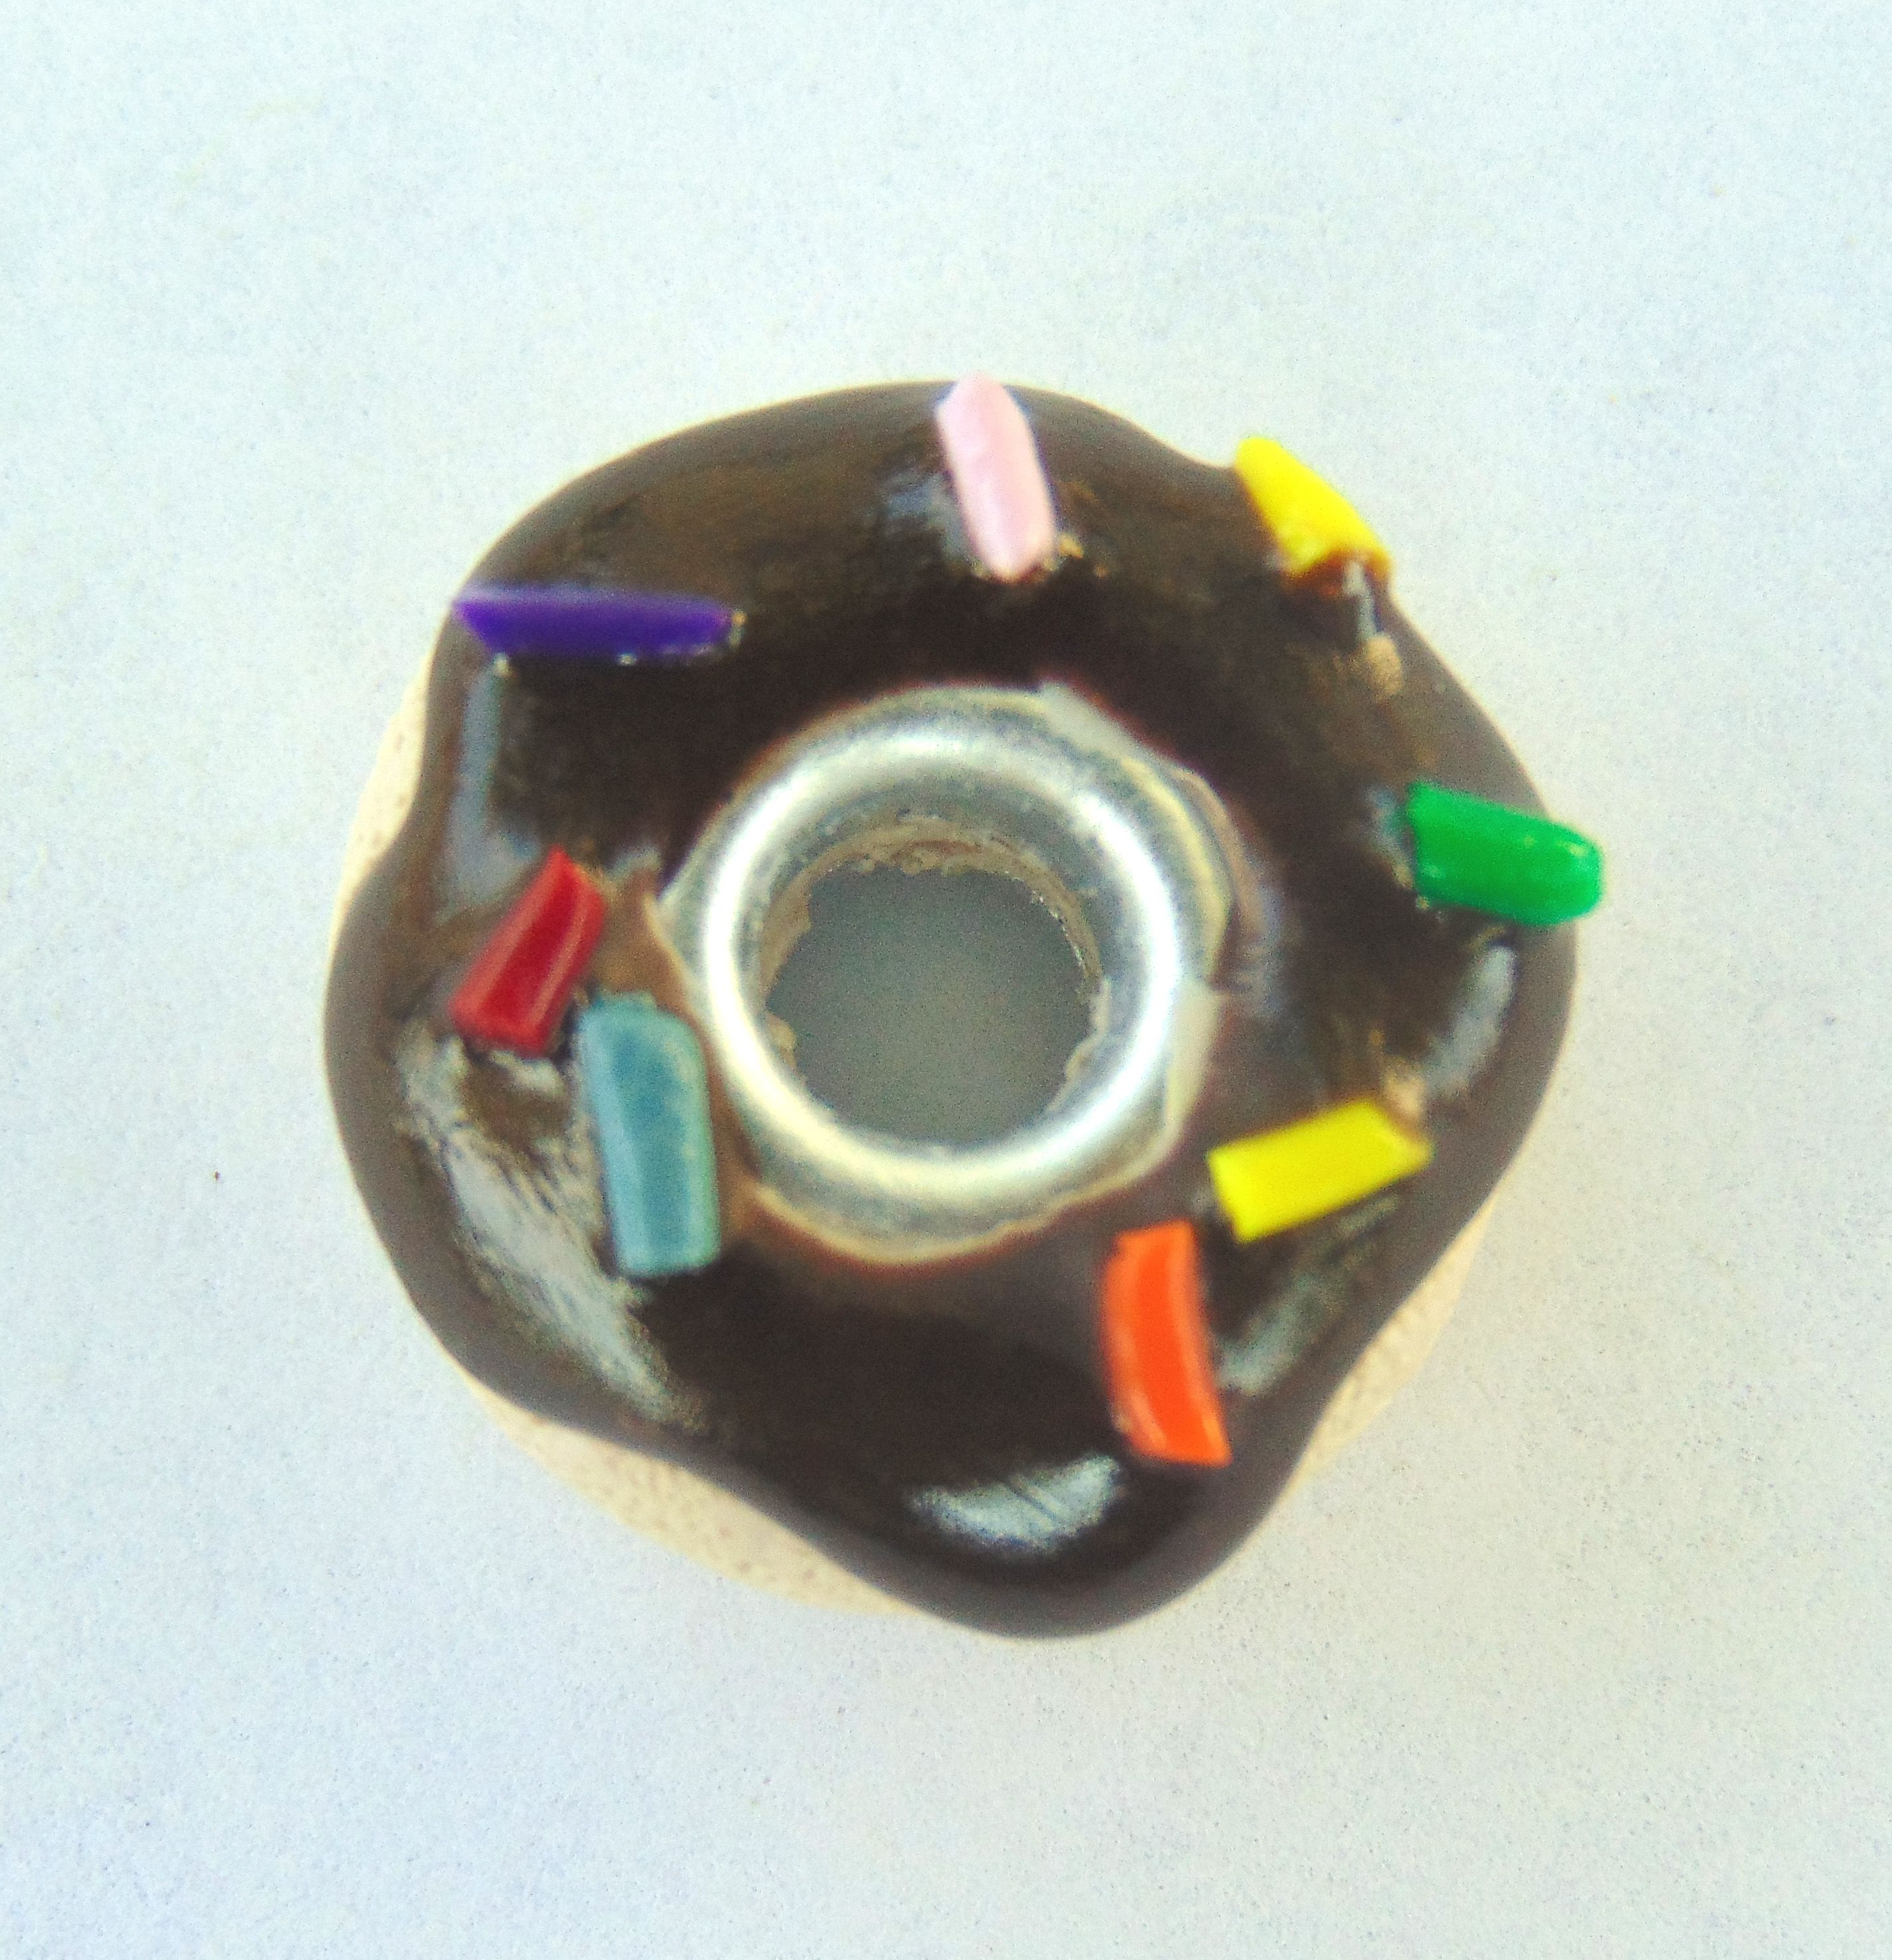 handmade donut sculpey cute bracelet chocolate clay jewelry food charm polymer sweet handcrafted frosted doughnut pandora bead pastry sprinkles